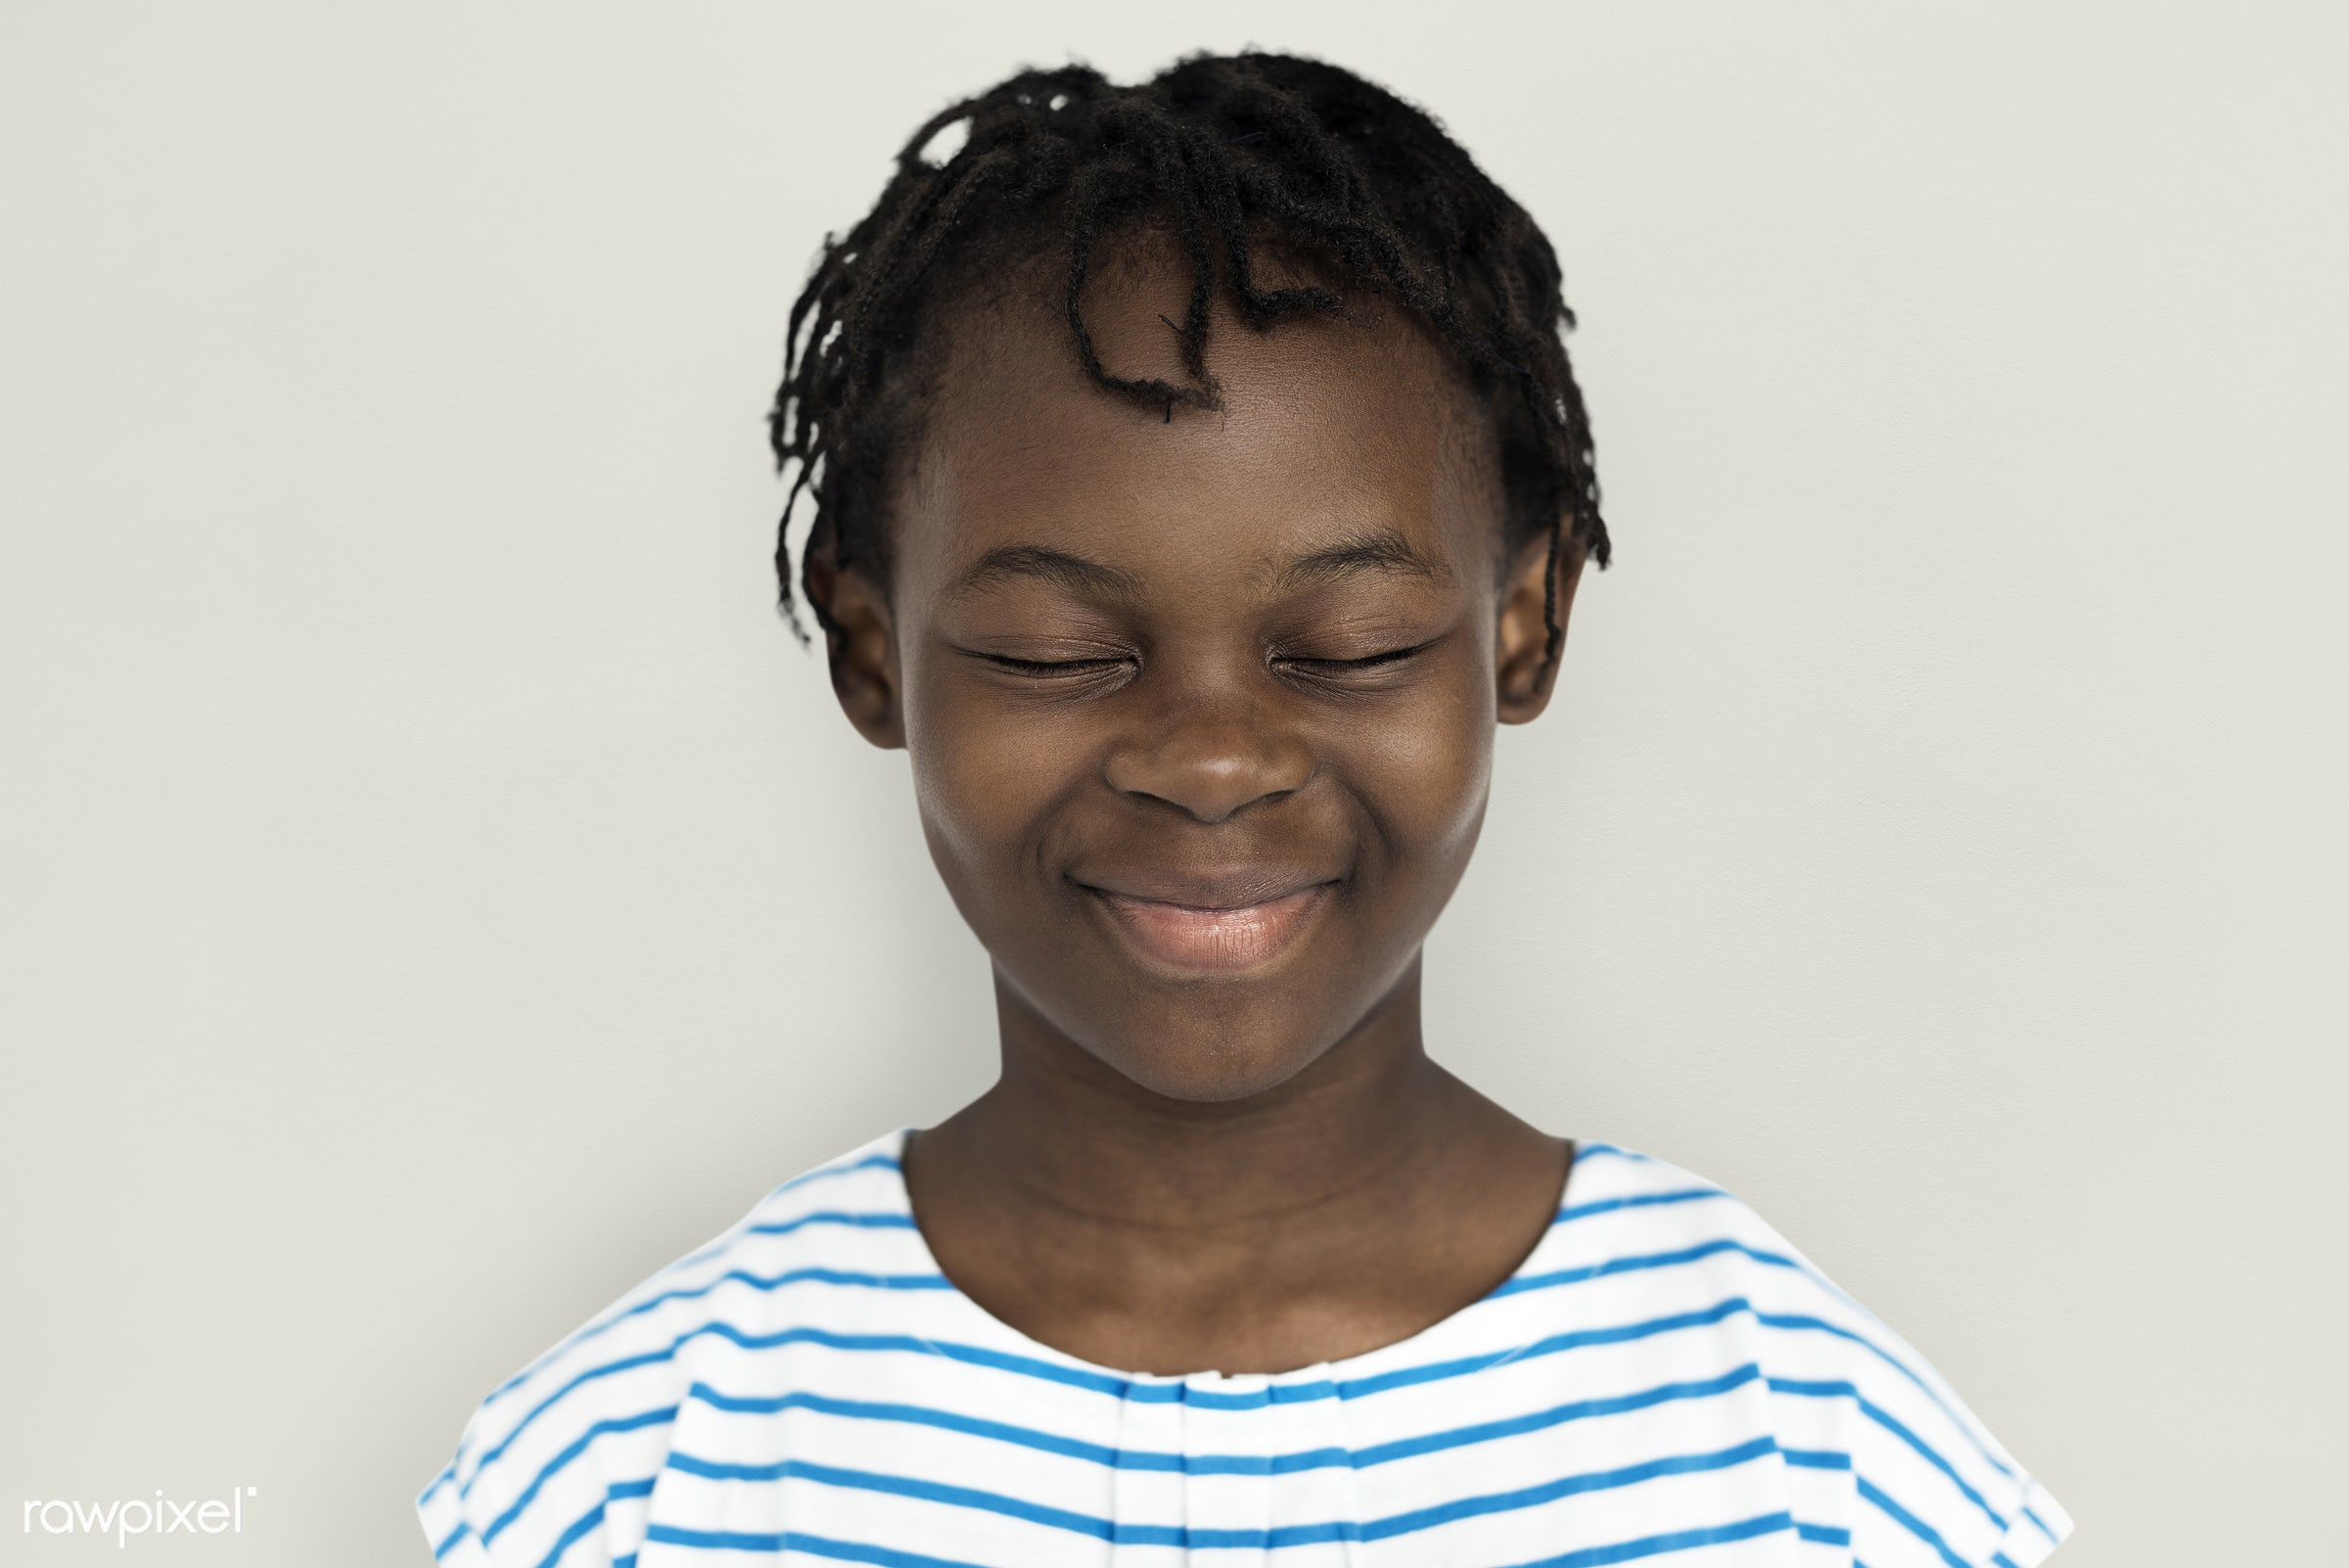 expression, studio, person, little, people, kid, childhood, cheerful, smiling, isolated, white, happiness, youth, fun,...